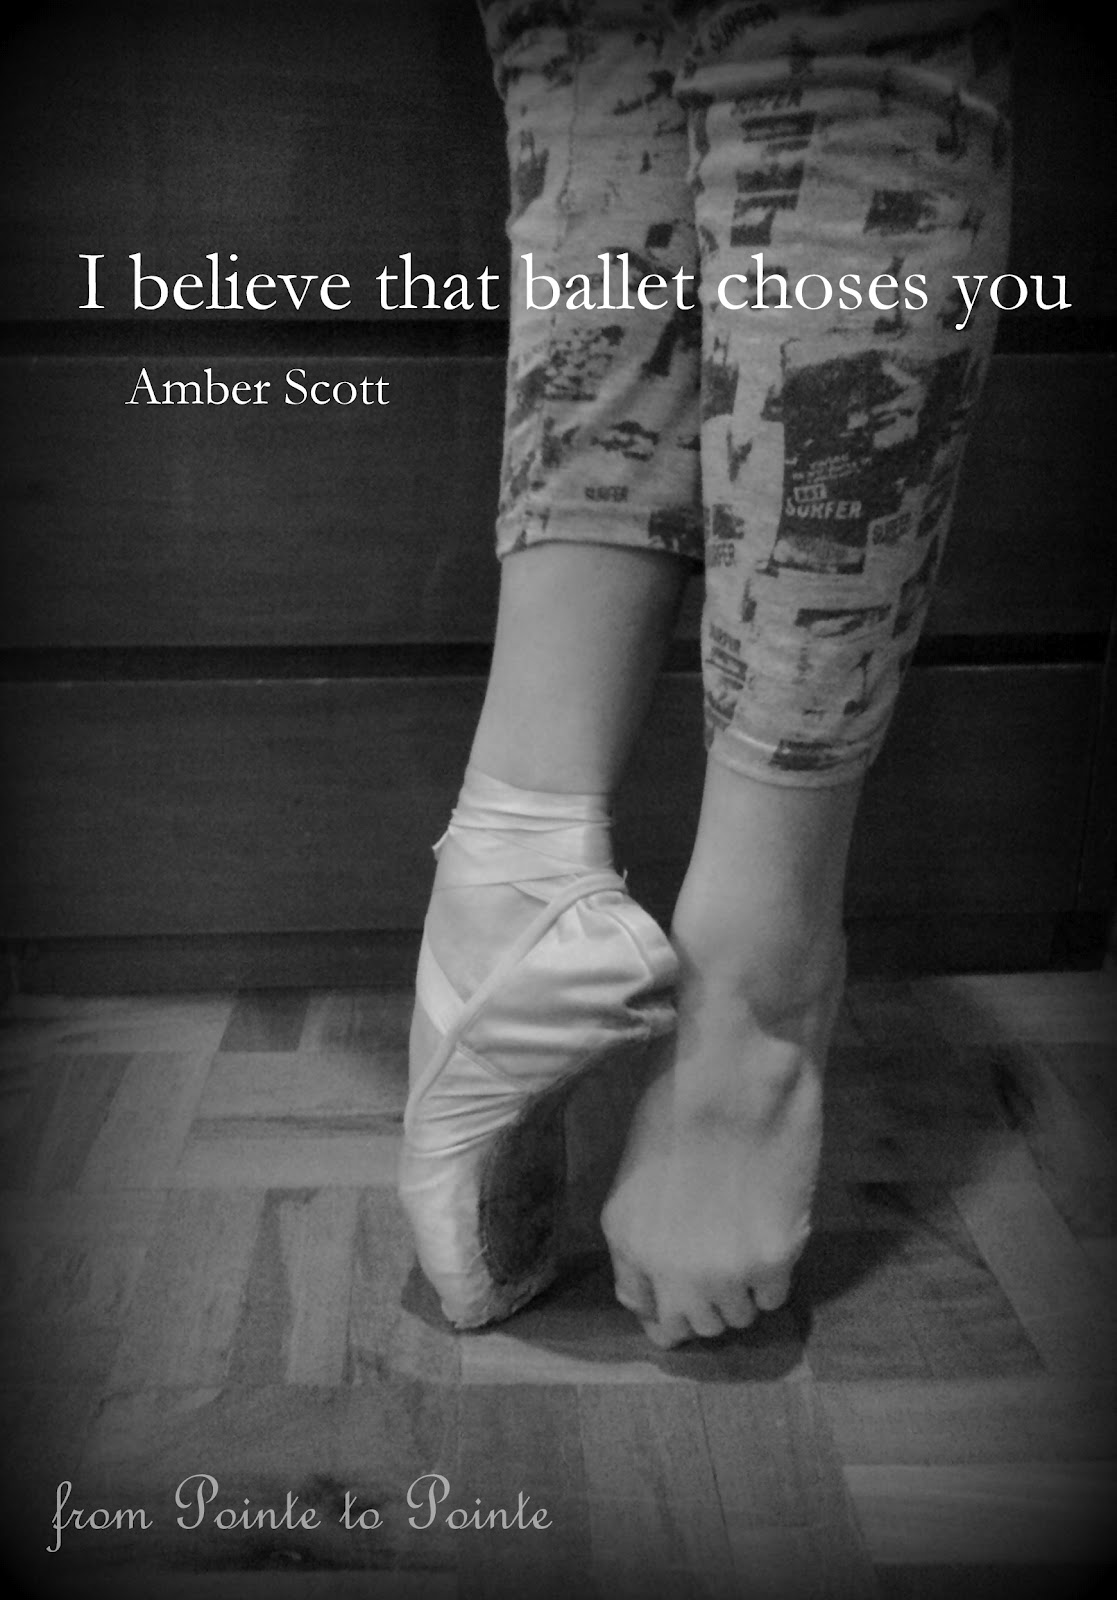 Grunge blog http://acid-ness.tumblr.com/ more ballet pics ...